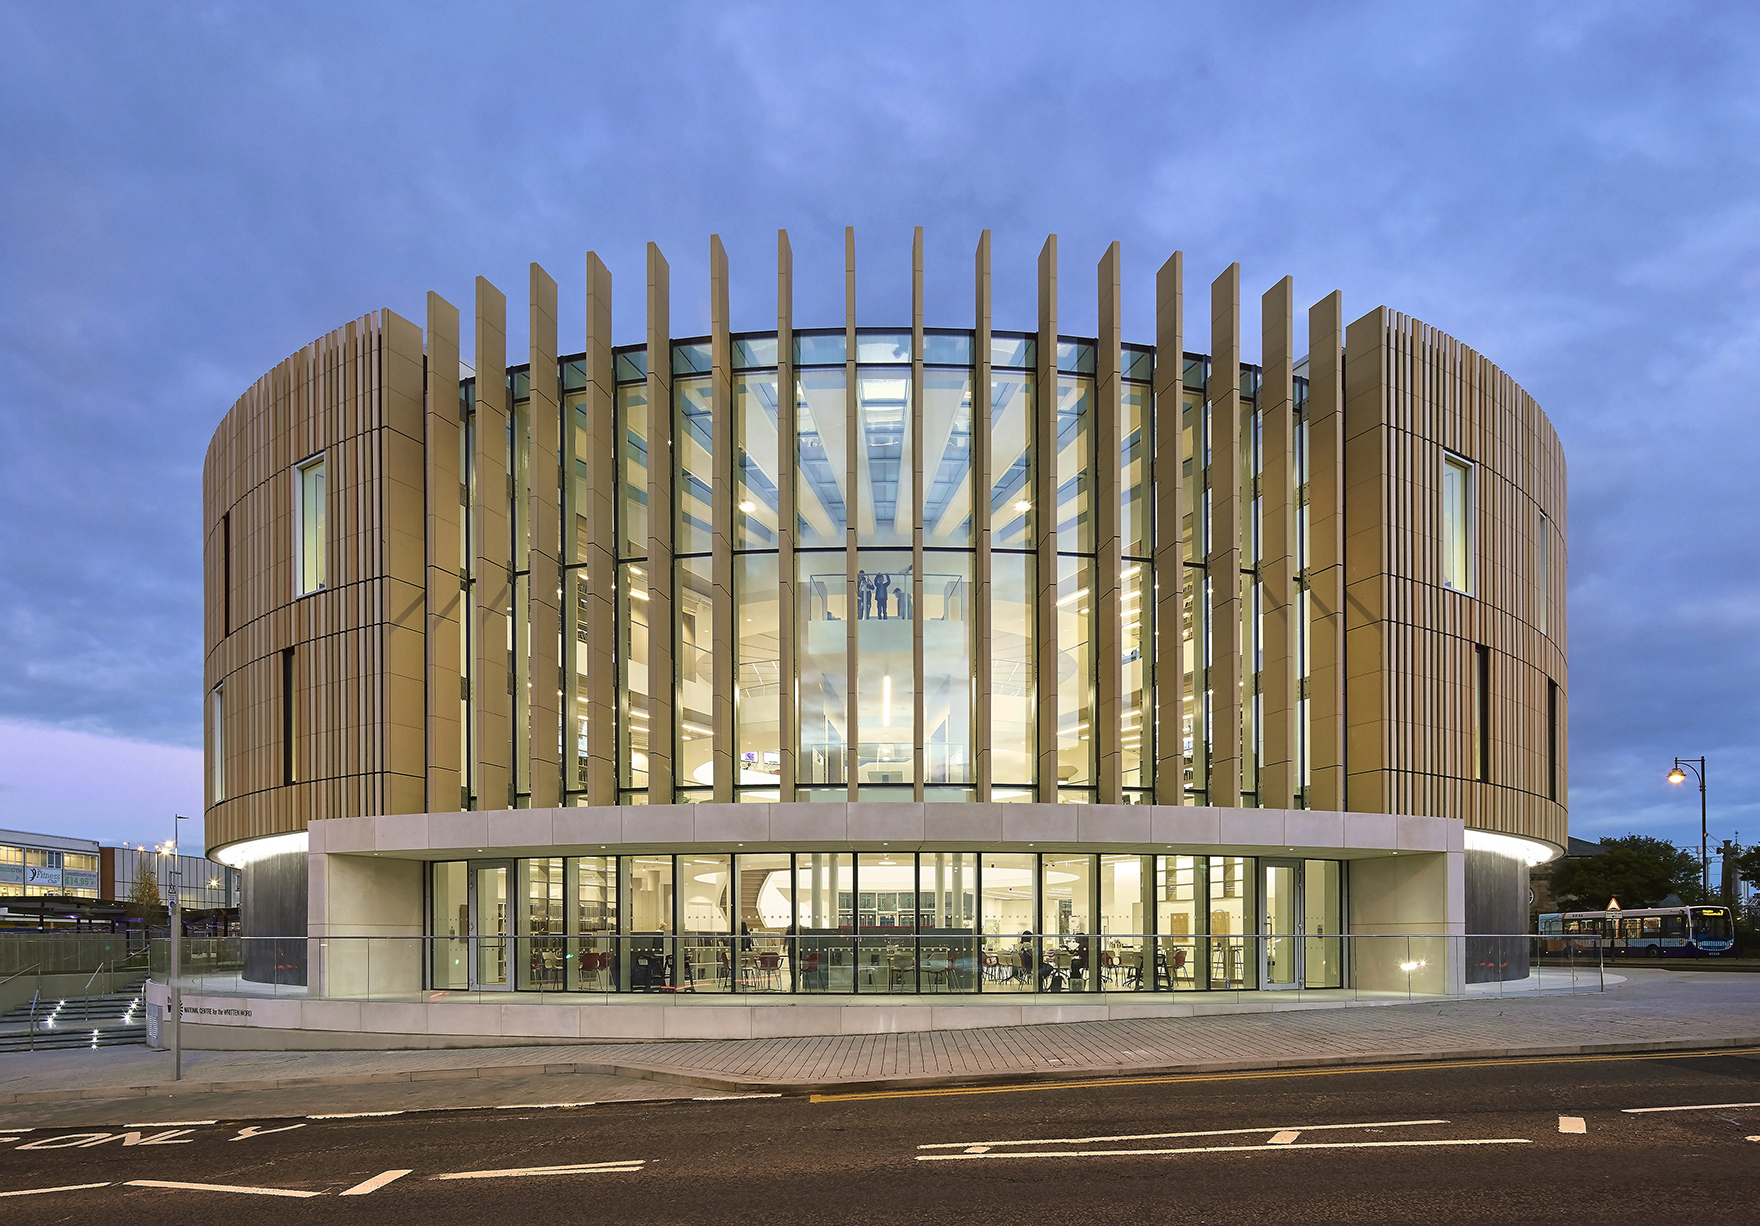 Riba North East Building Of The Year The Word Exterior At Dusk Lh